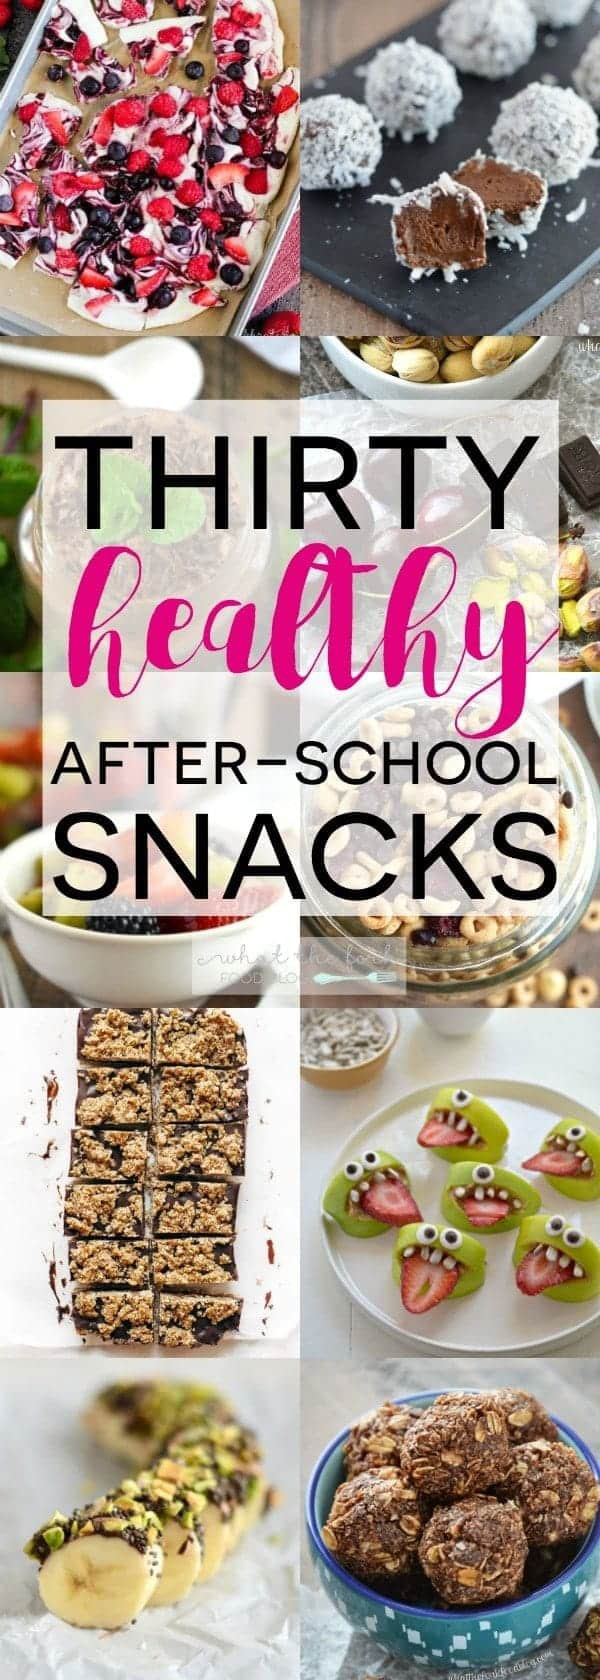 Healthy Afterschool Snacks  30 Healthy After School Snacks What the Fork